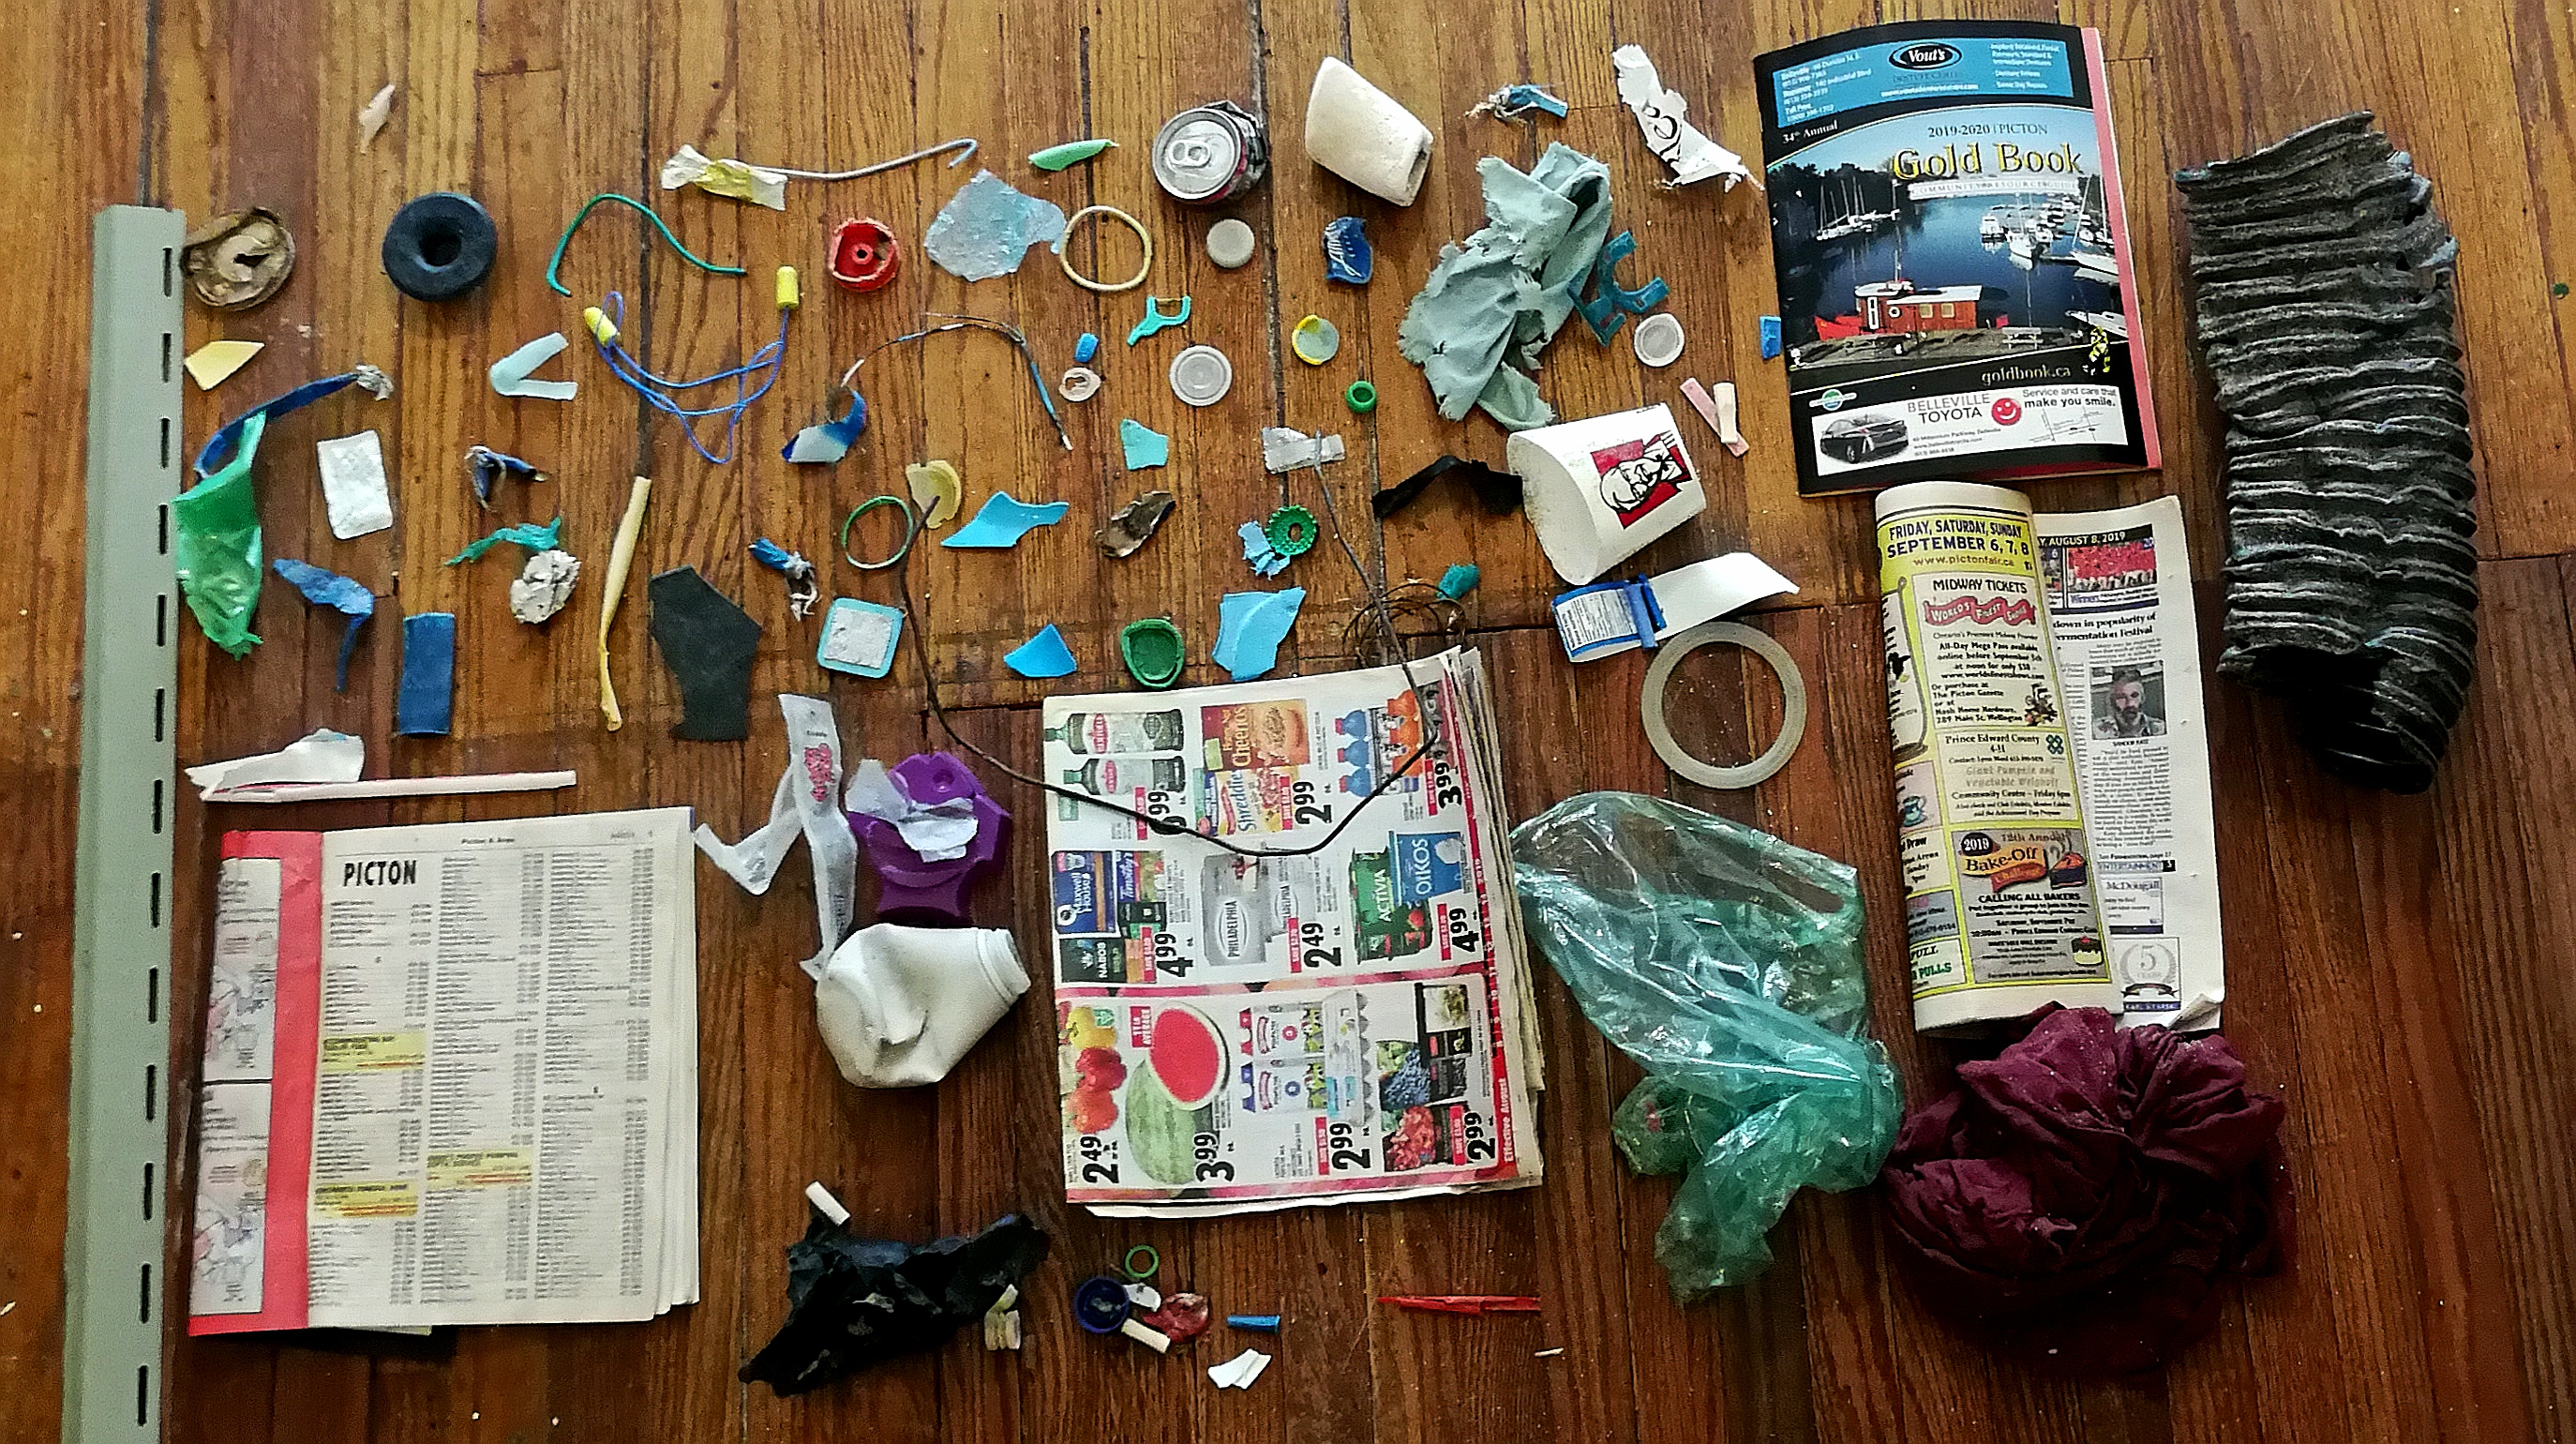 Debris found on local streets and beaches, used in set design.